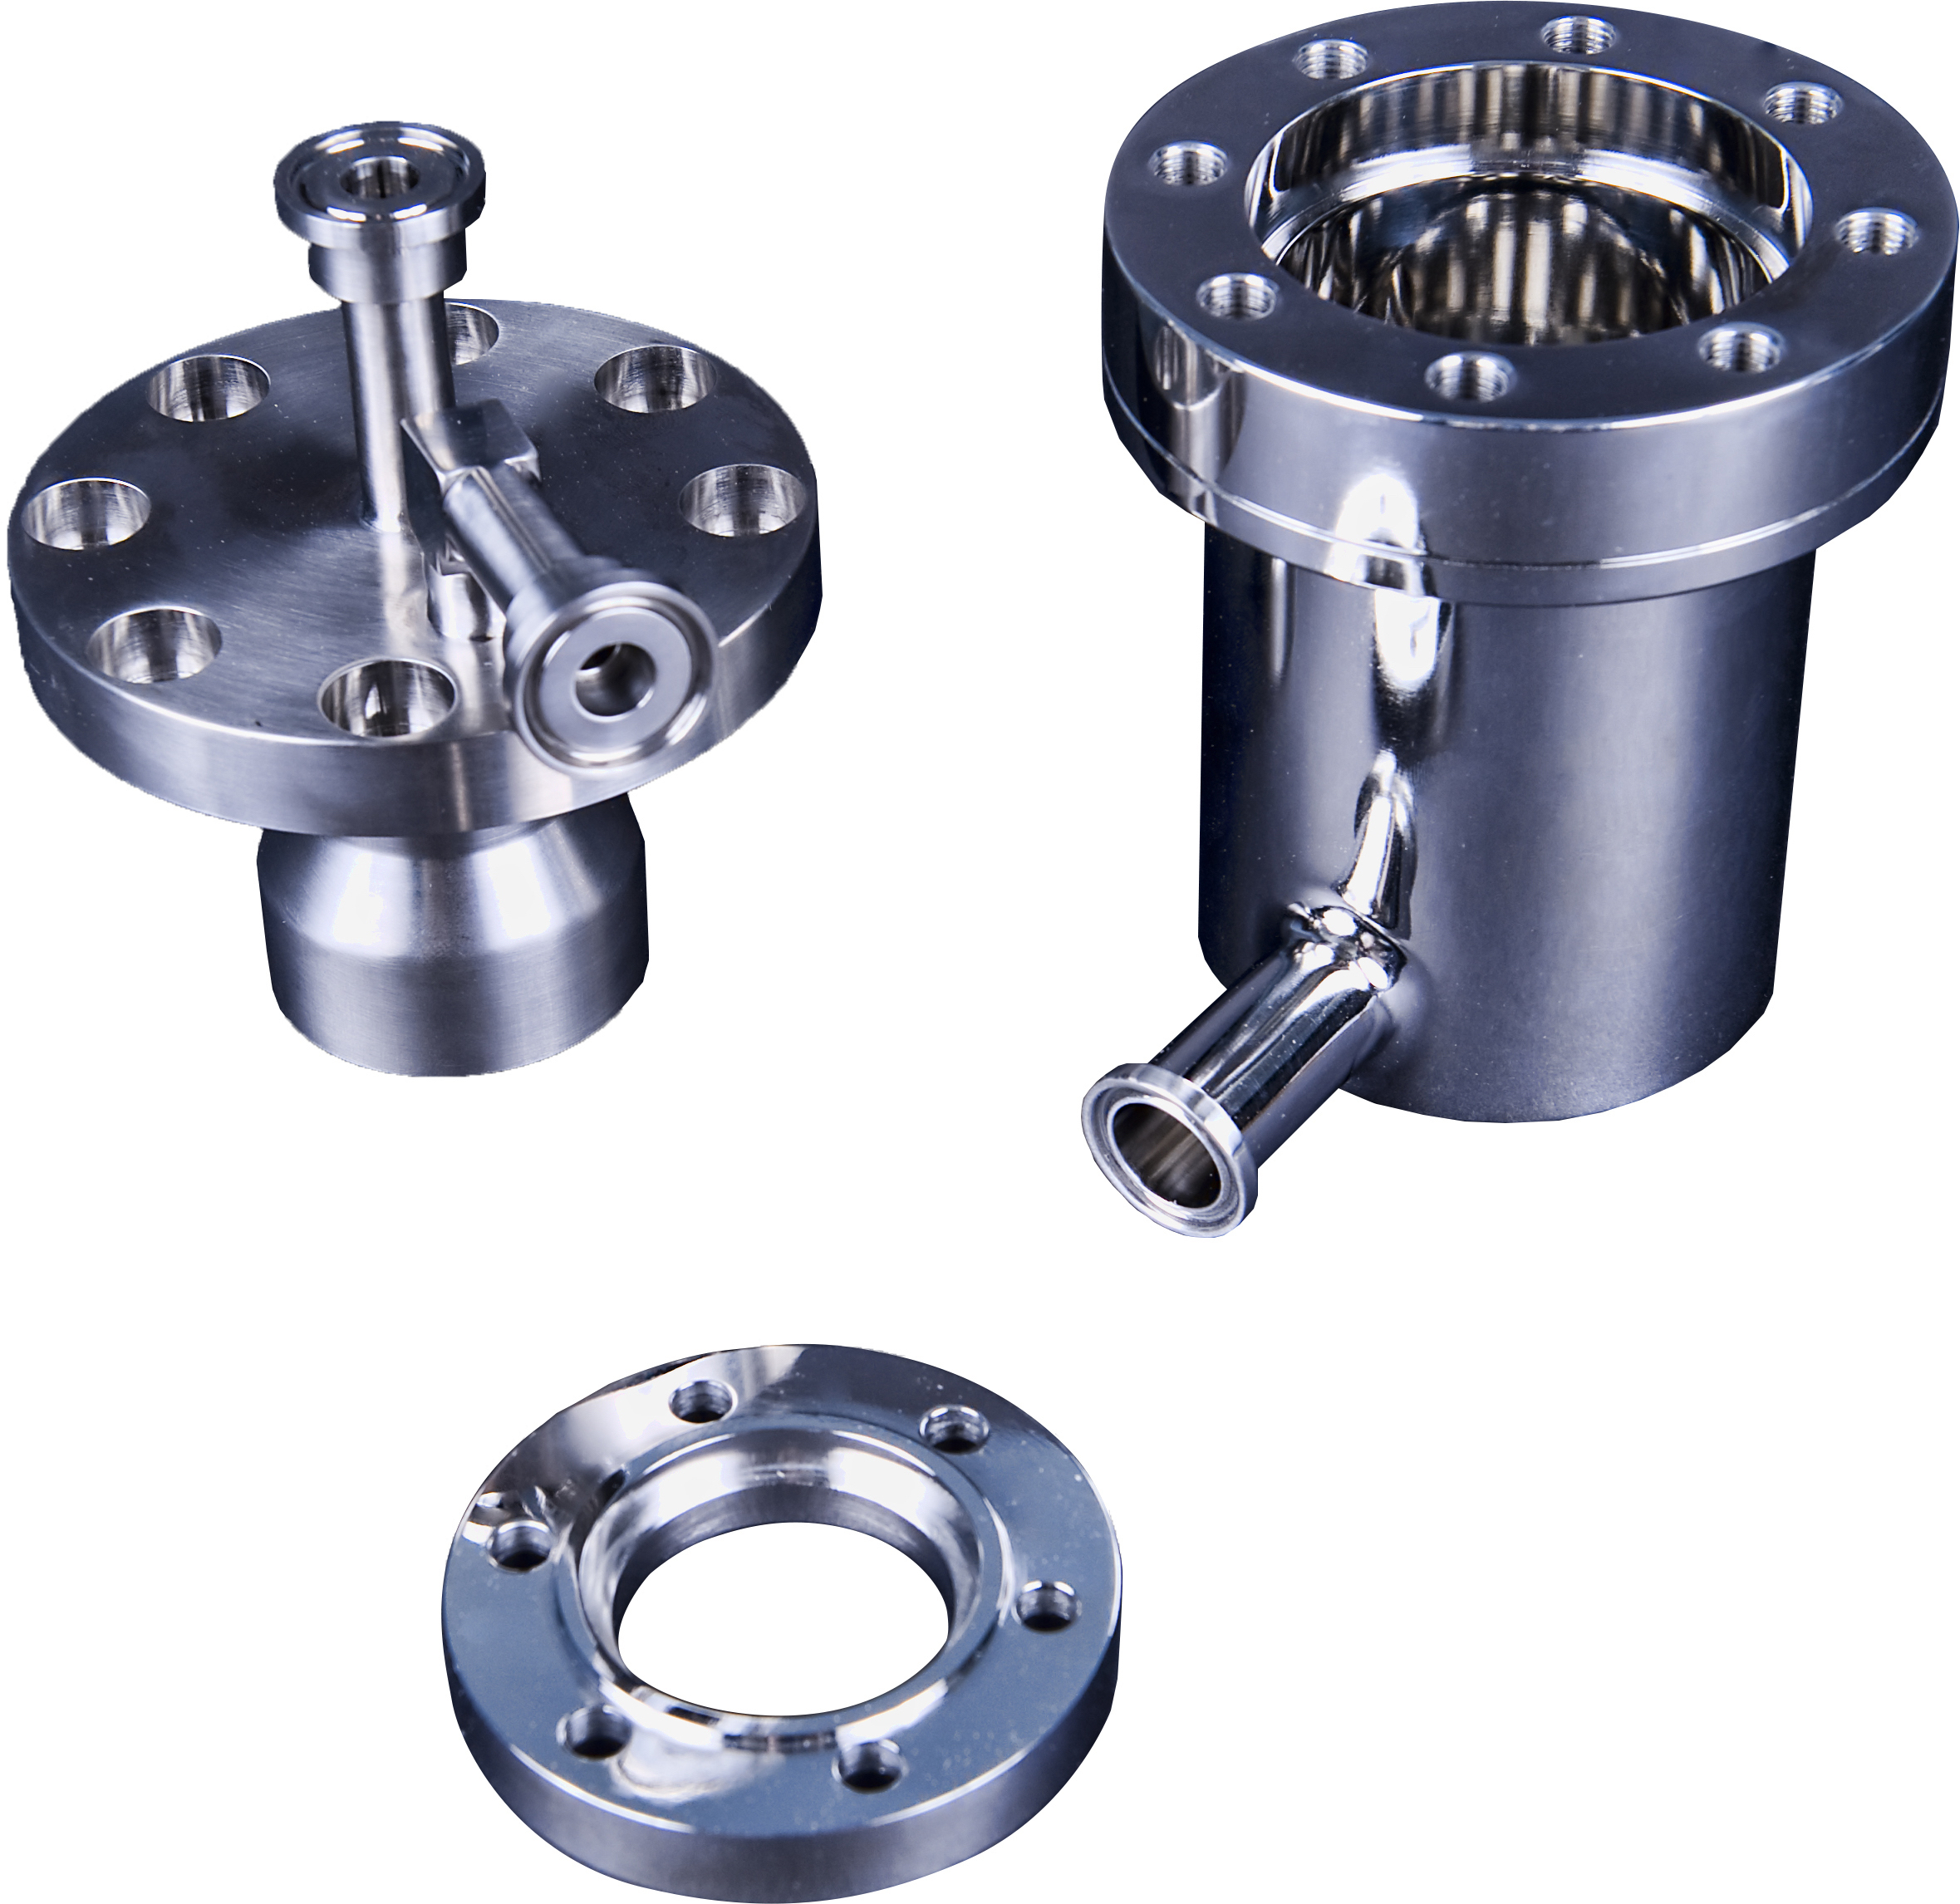 Our components for ASME pressure vessels are made to stainless steel ASME code requirements.